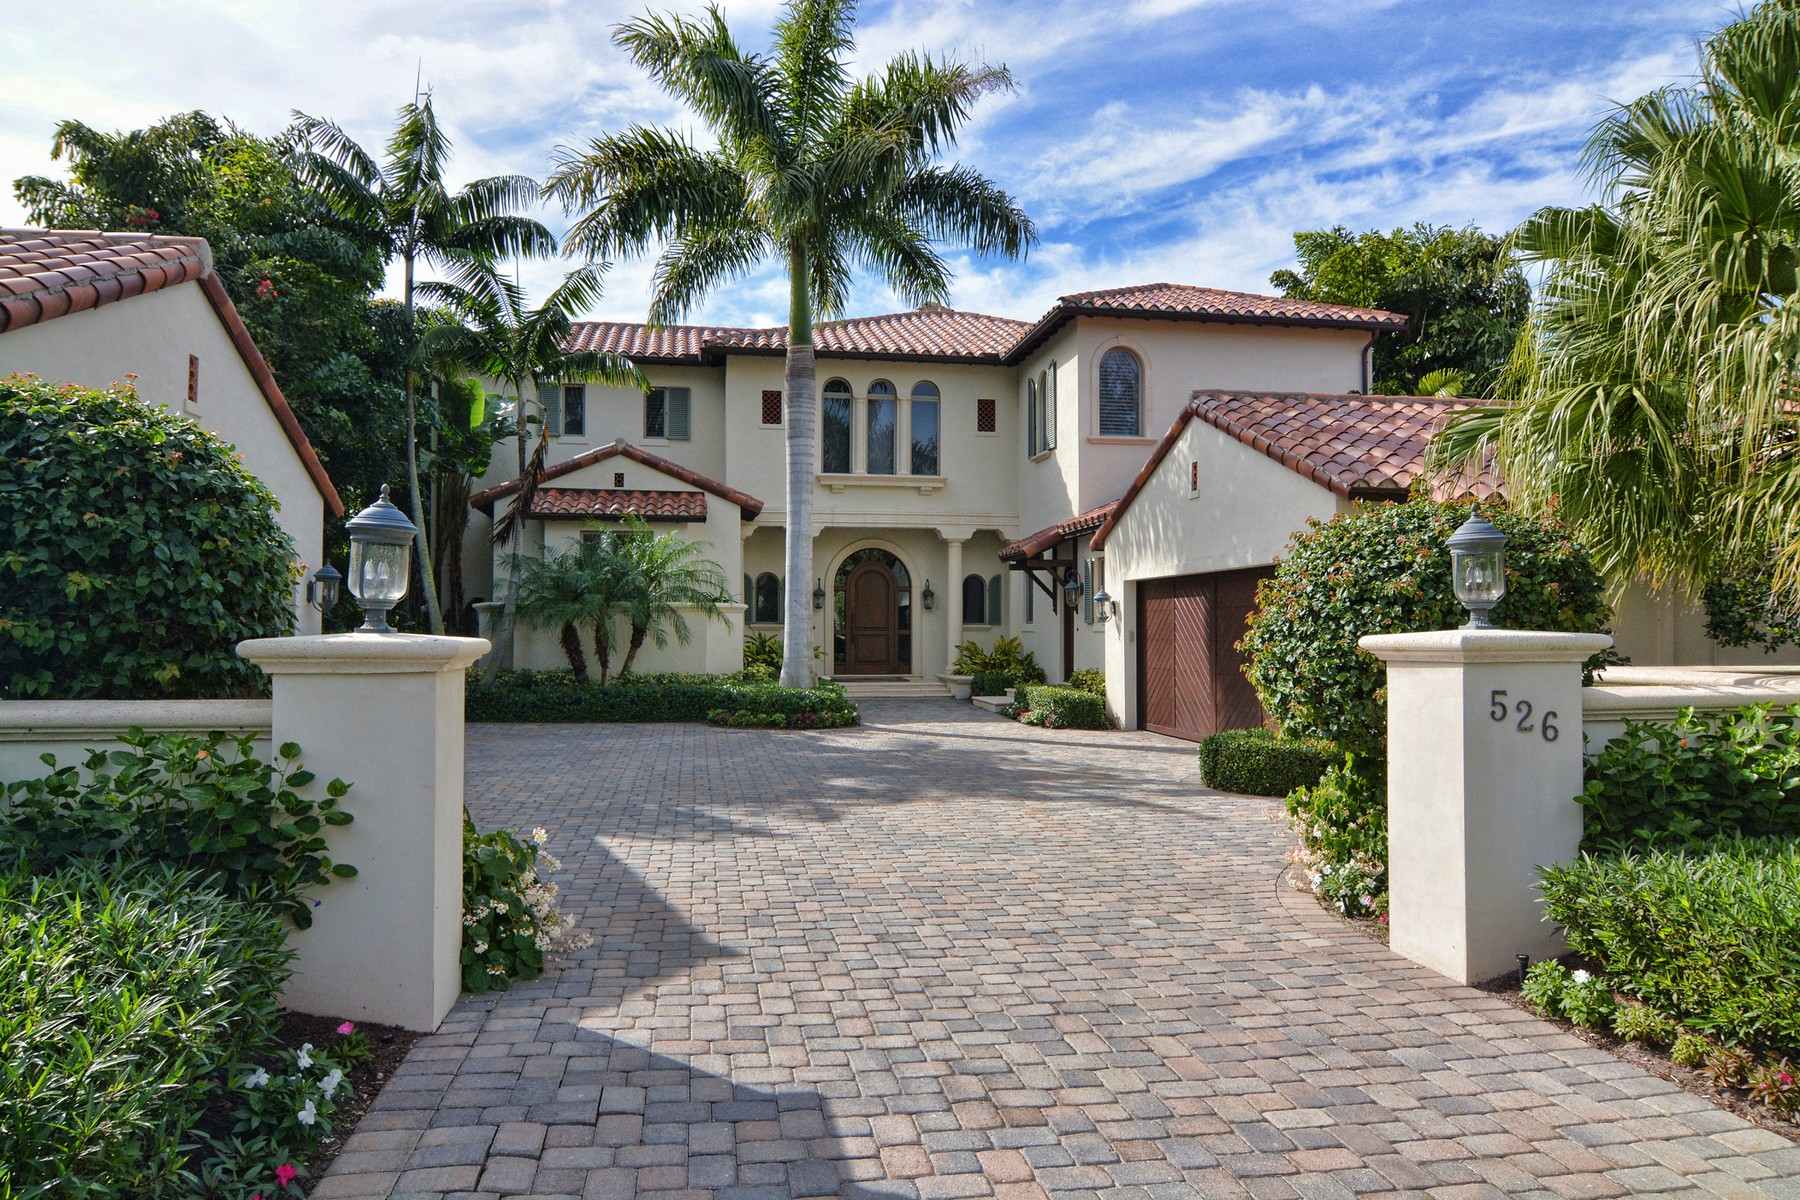 Casa Unifamiliar por un Venta en 526 Bald Eagle Drive at Trump National 526 Bald Eagle Drive Jupiter, Florida 33477 Estados Unidos